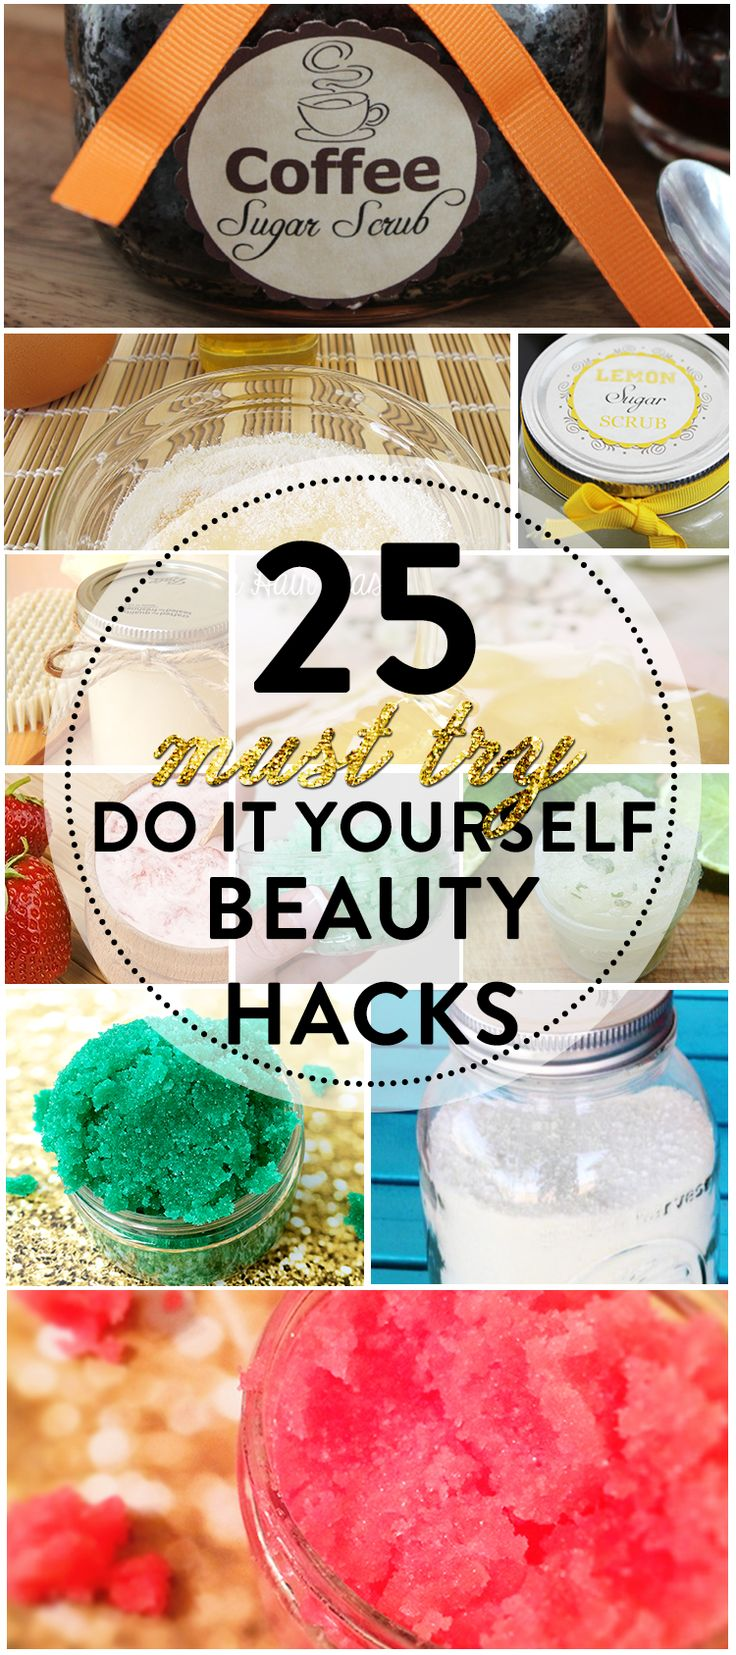 25 DIY Beauty Hacks You Have To Try Right Now!